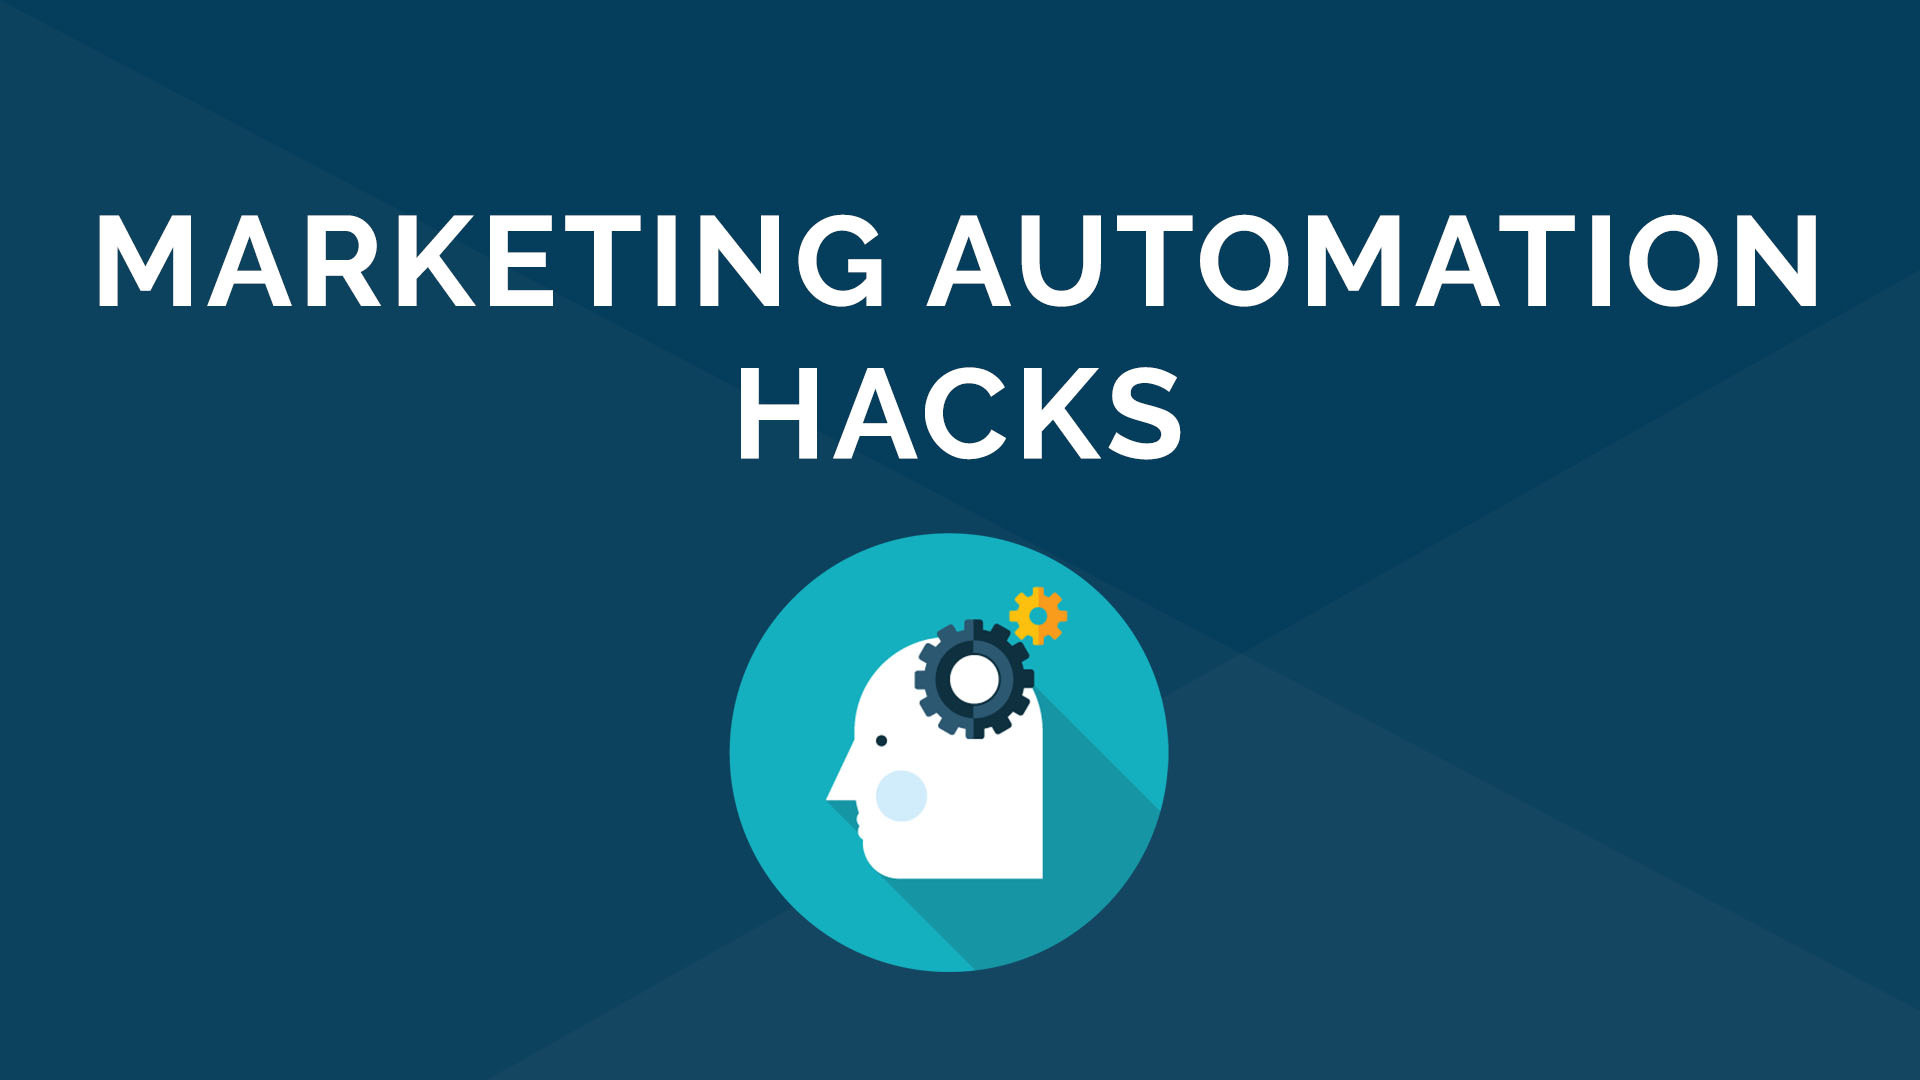 Marketing Automation Hacks: Build Brand, Drive Demand and Expand Customer Relationships